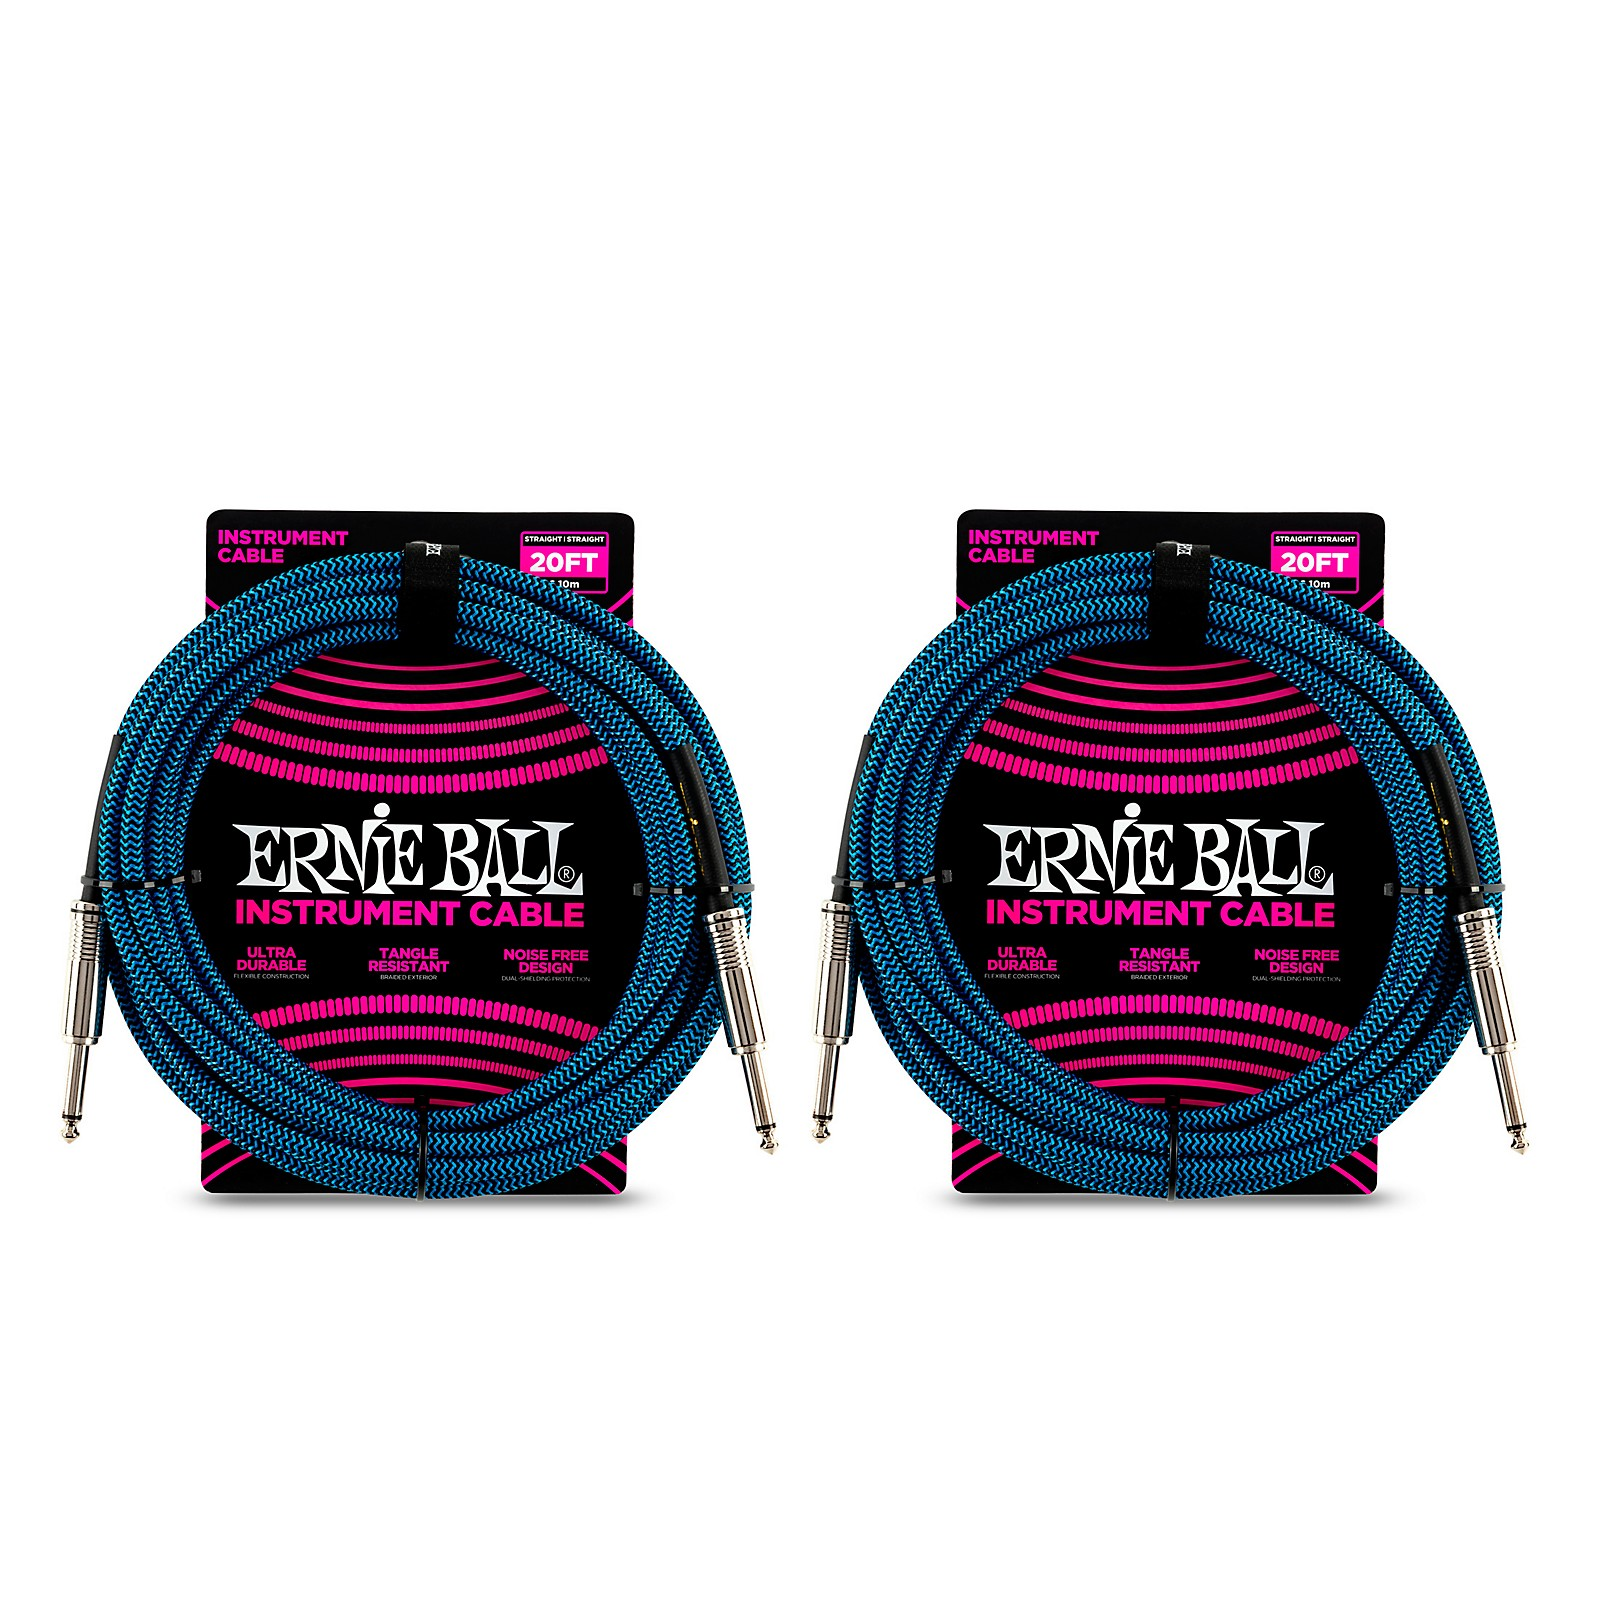 Ernie Ball Straight To Straight Nickel Plated 1/4 Woven 20 ft. Black/Blue Instrument Cable - 2-Pack